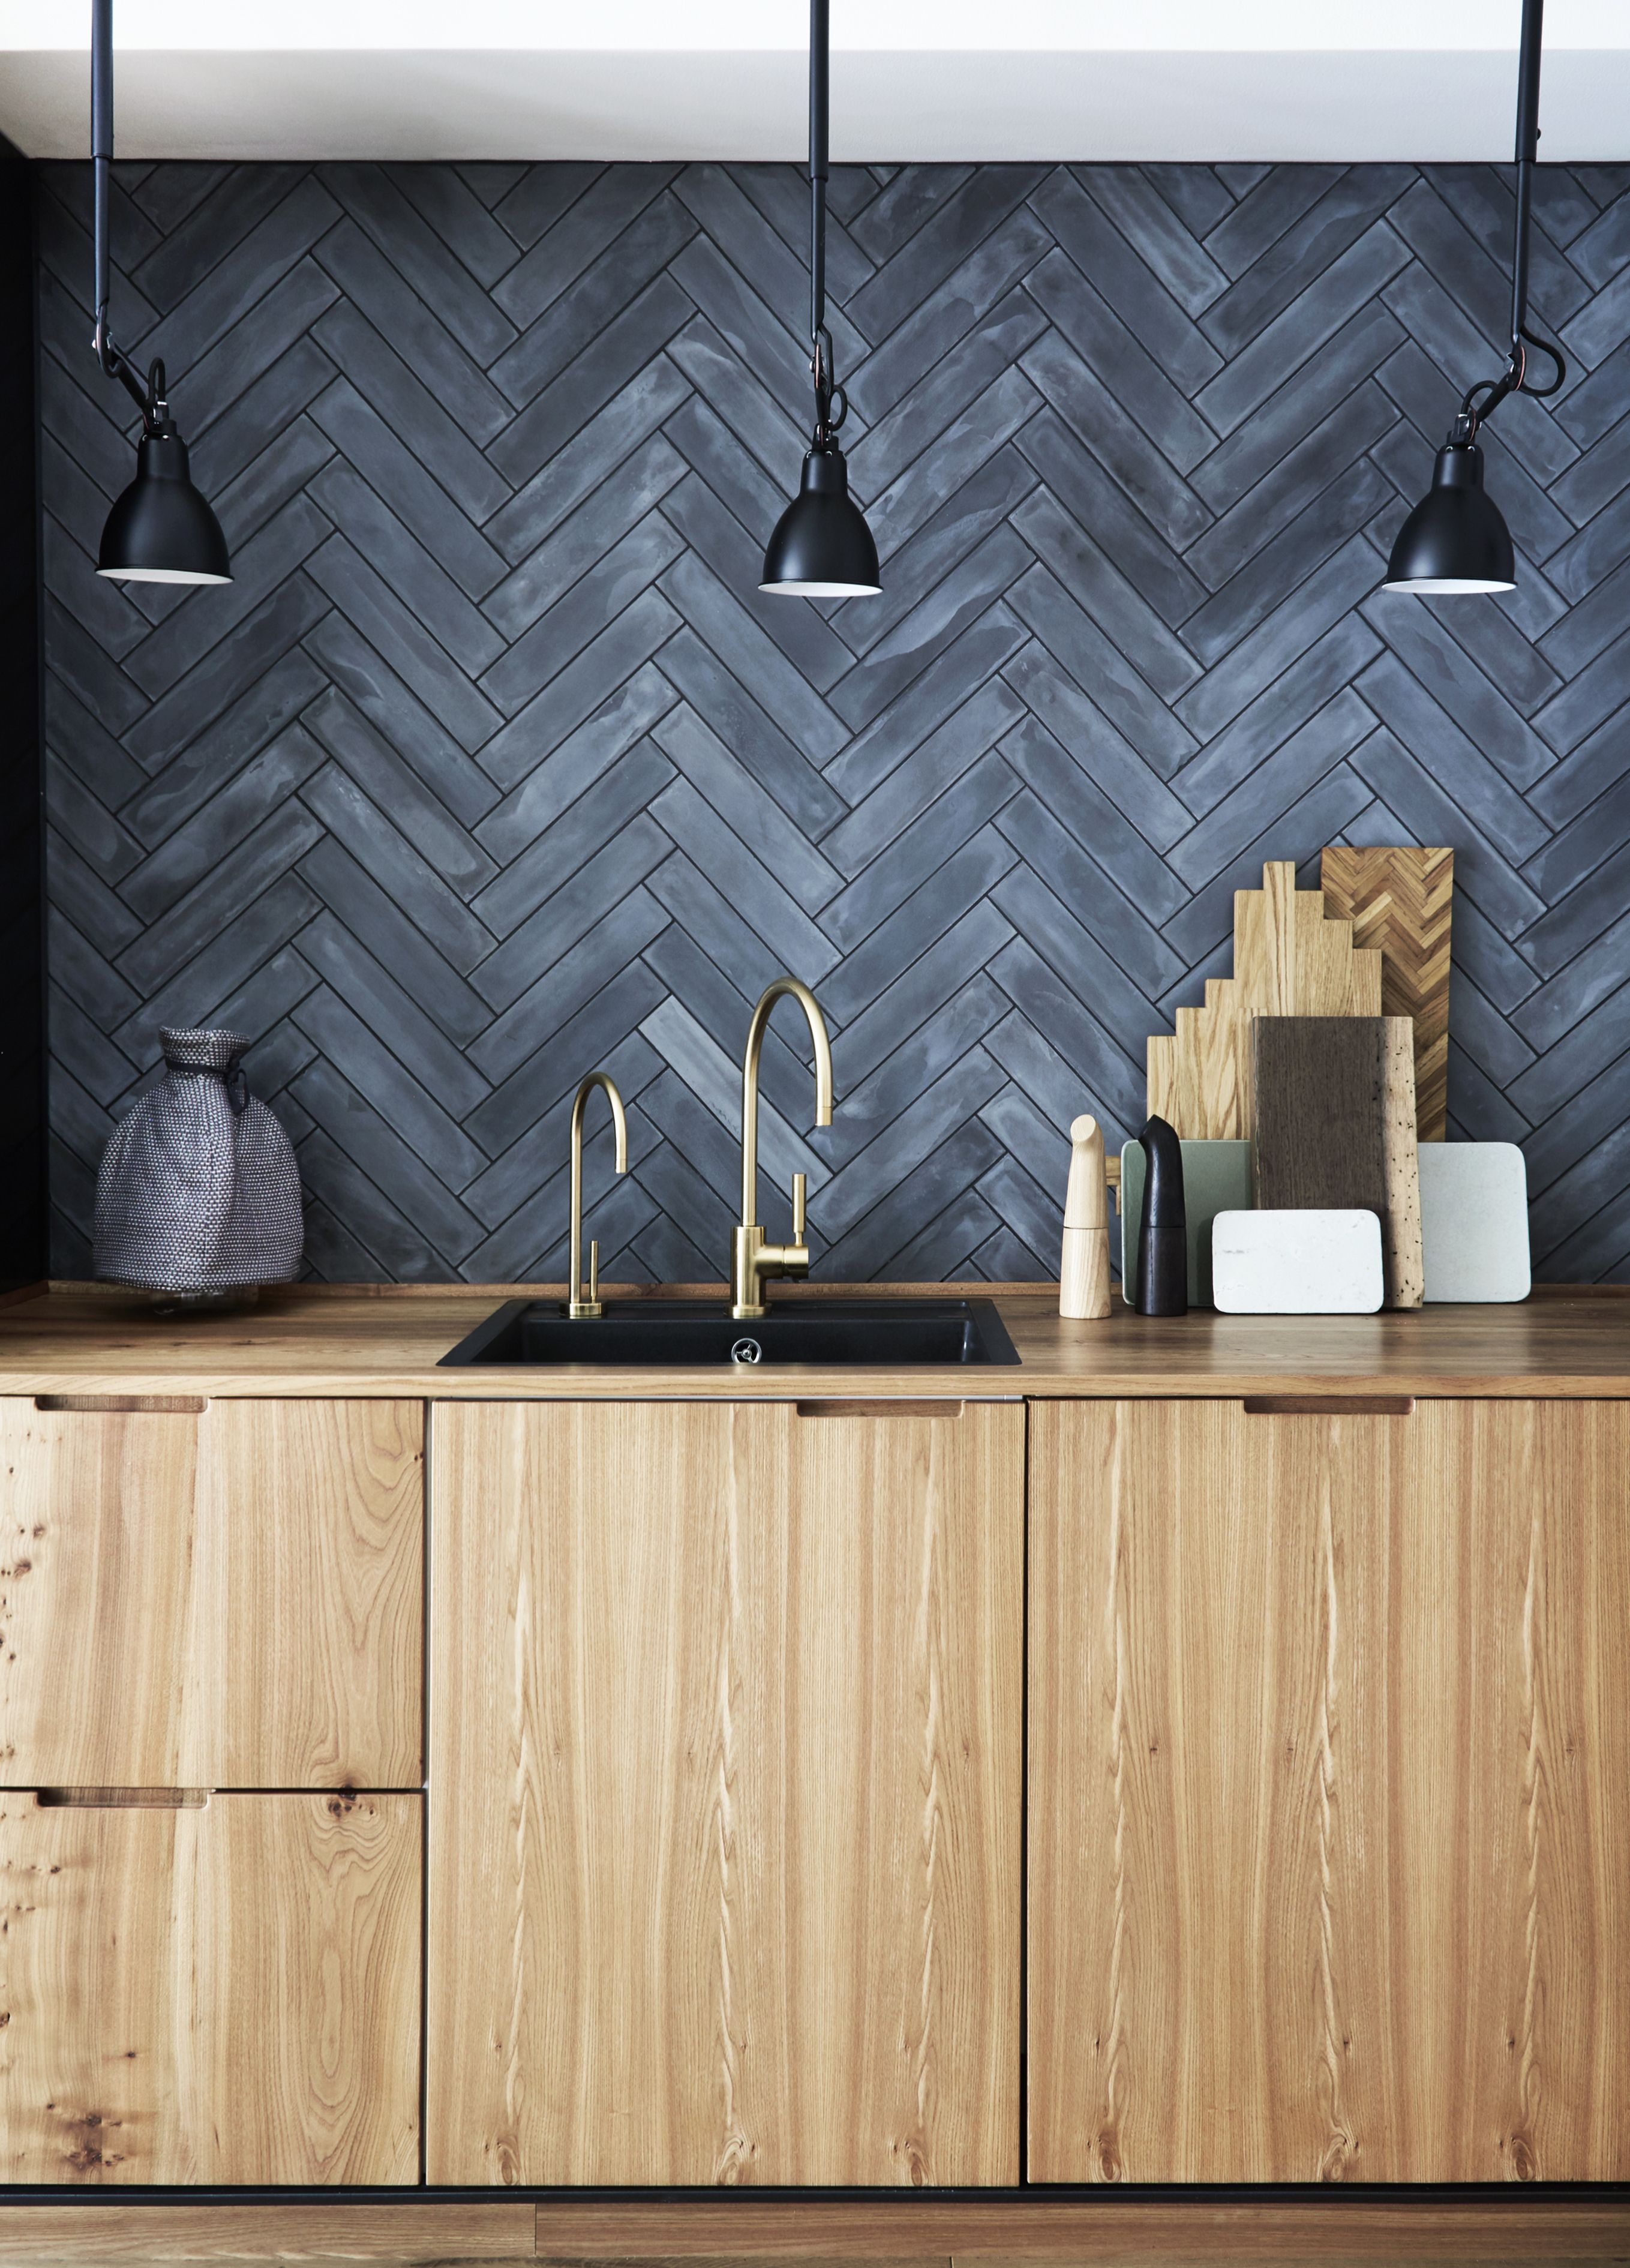 Steam Cured Concrete Tiles By Marokk Https Archello Com Product Steam Cured Concrete Tiles Photo By Courtesy Of Mar Timber Kitchen Interior Interior Design